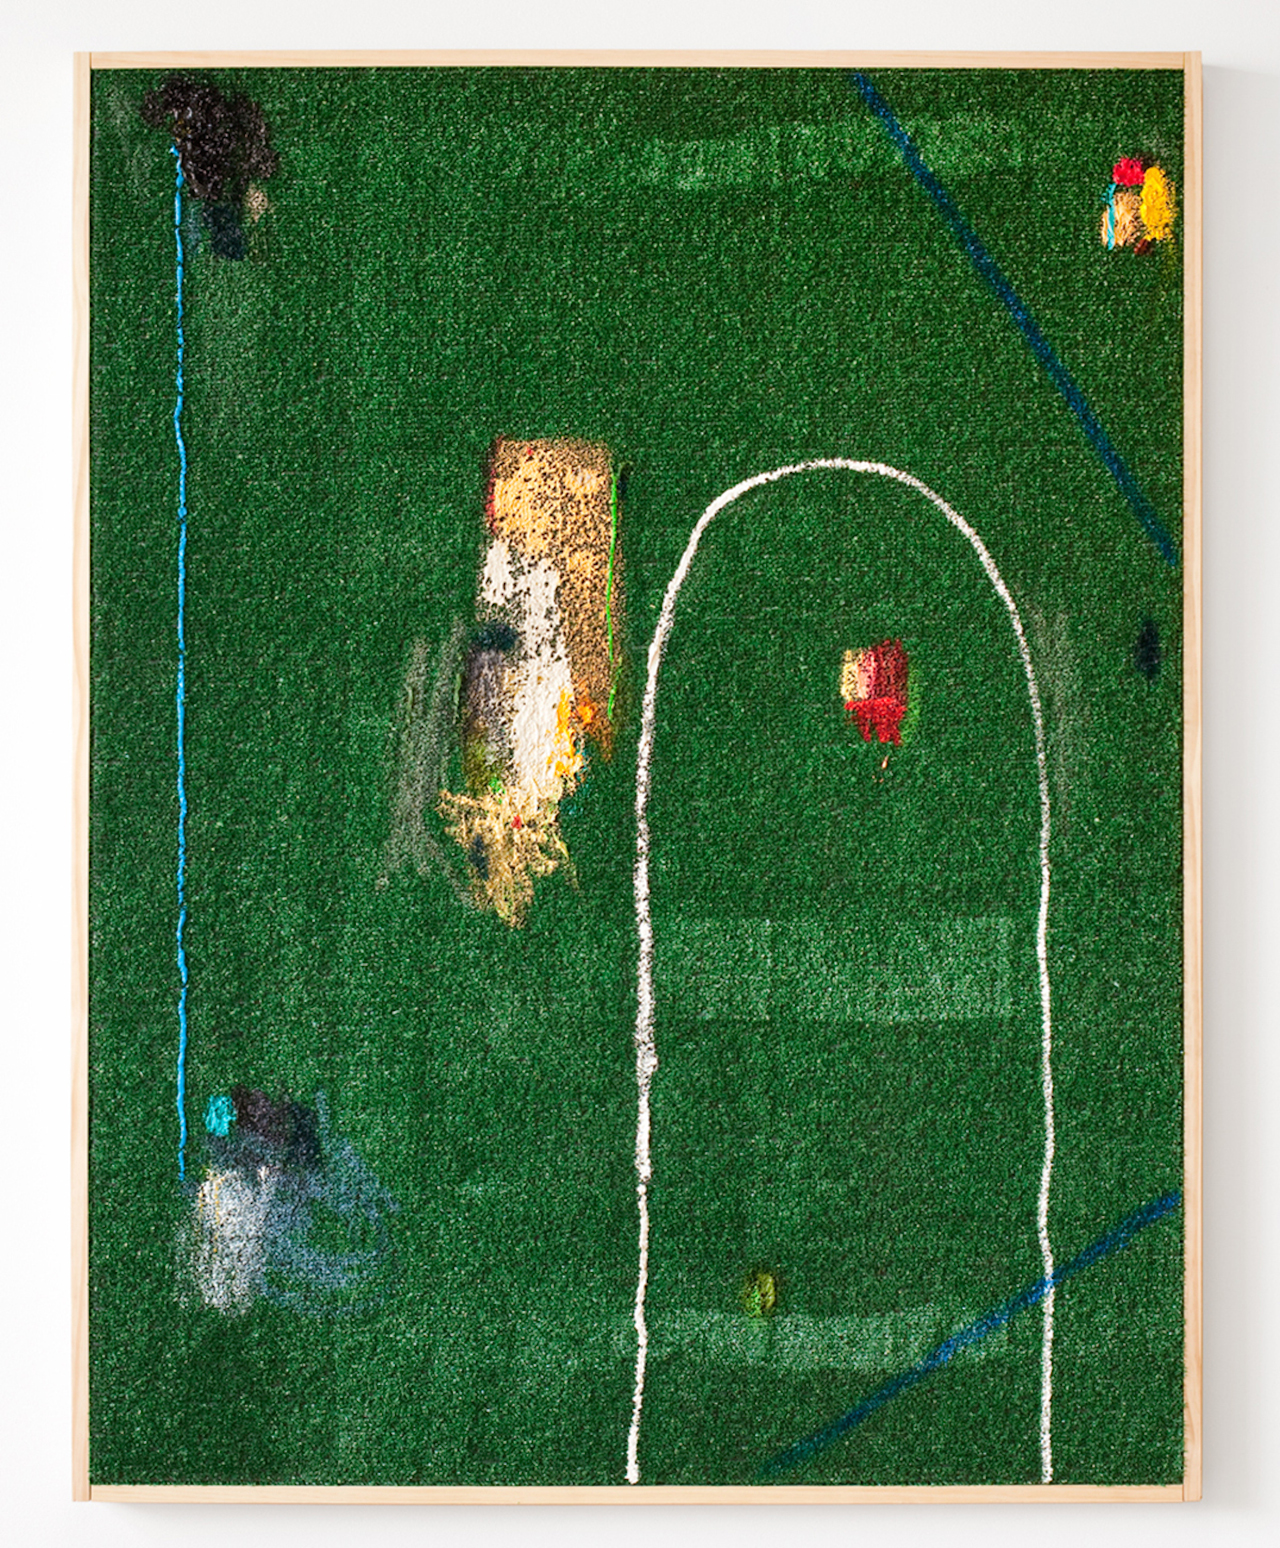 Nothing is off-limits, Untitled, oil and acrylic on Astroturf, 2013